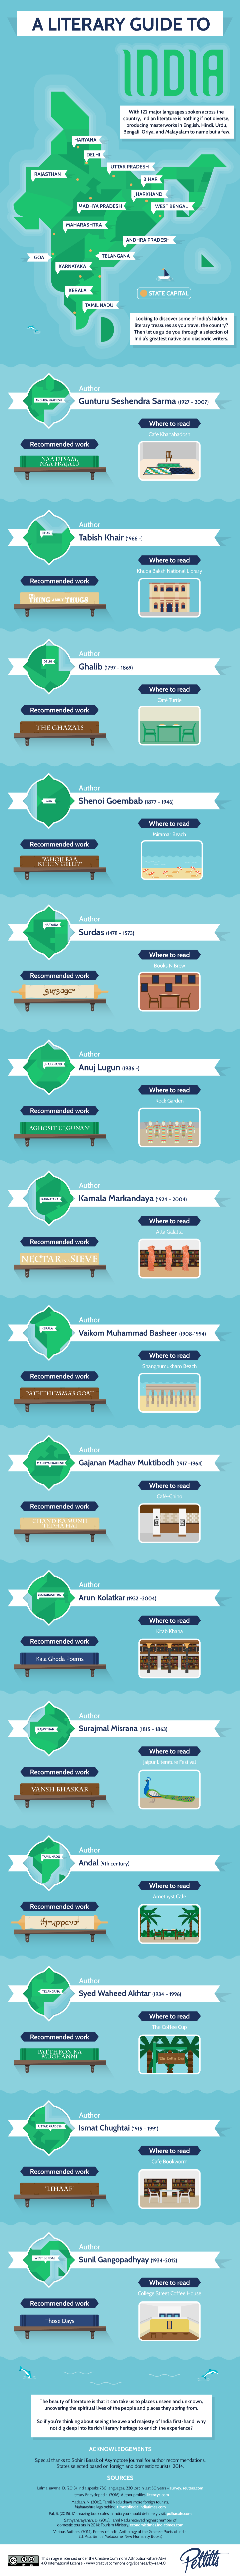 A Literary Guide to India